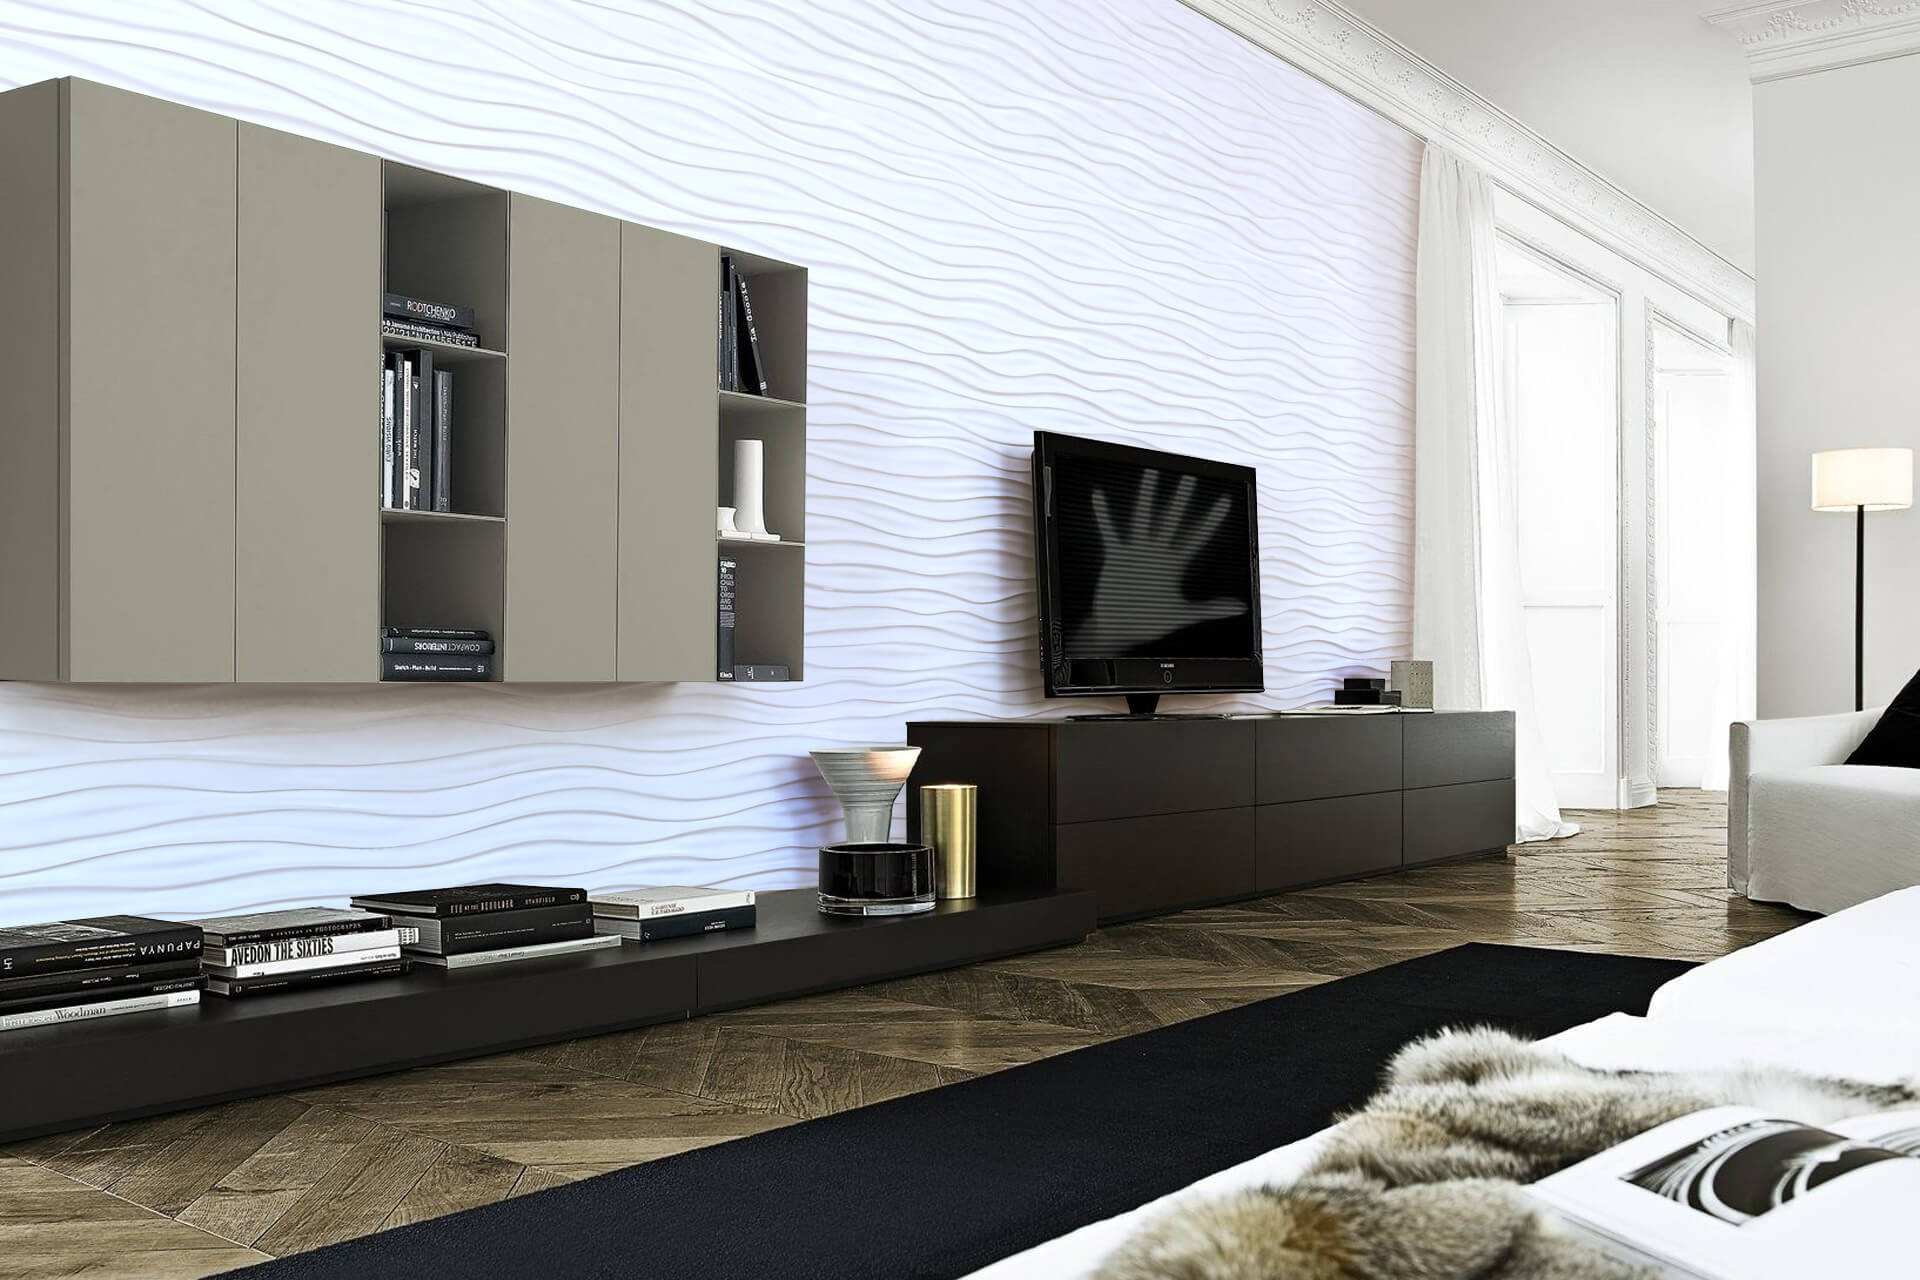 Is it possible to order customized 3D wall panels?